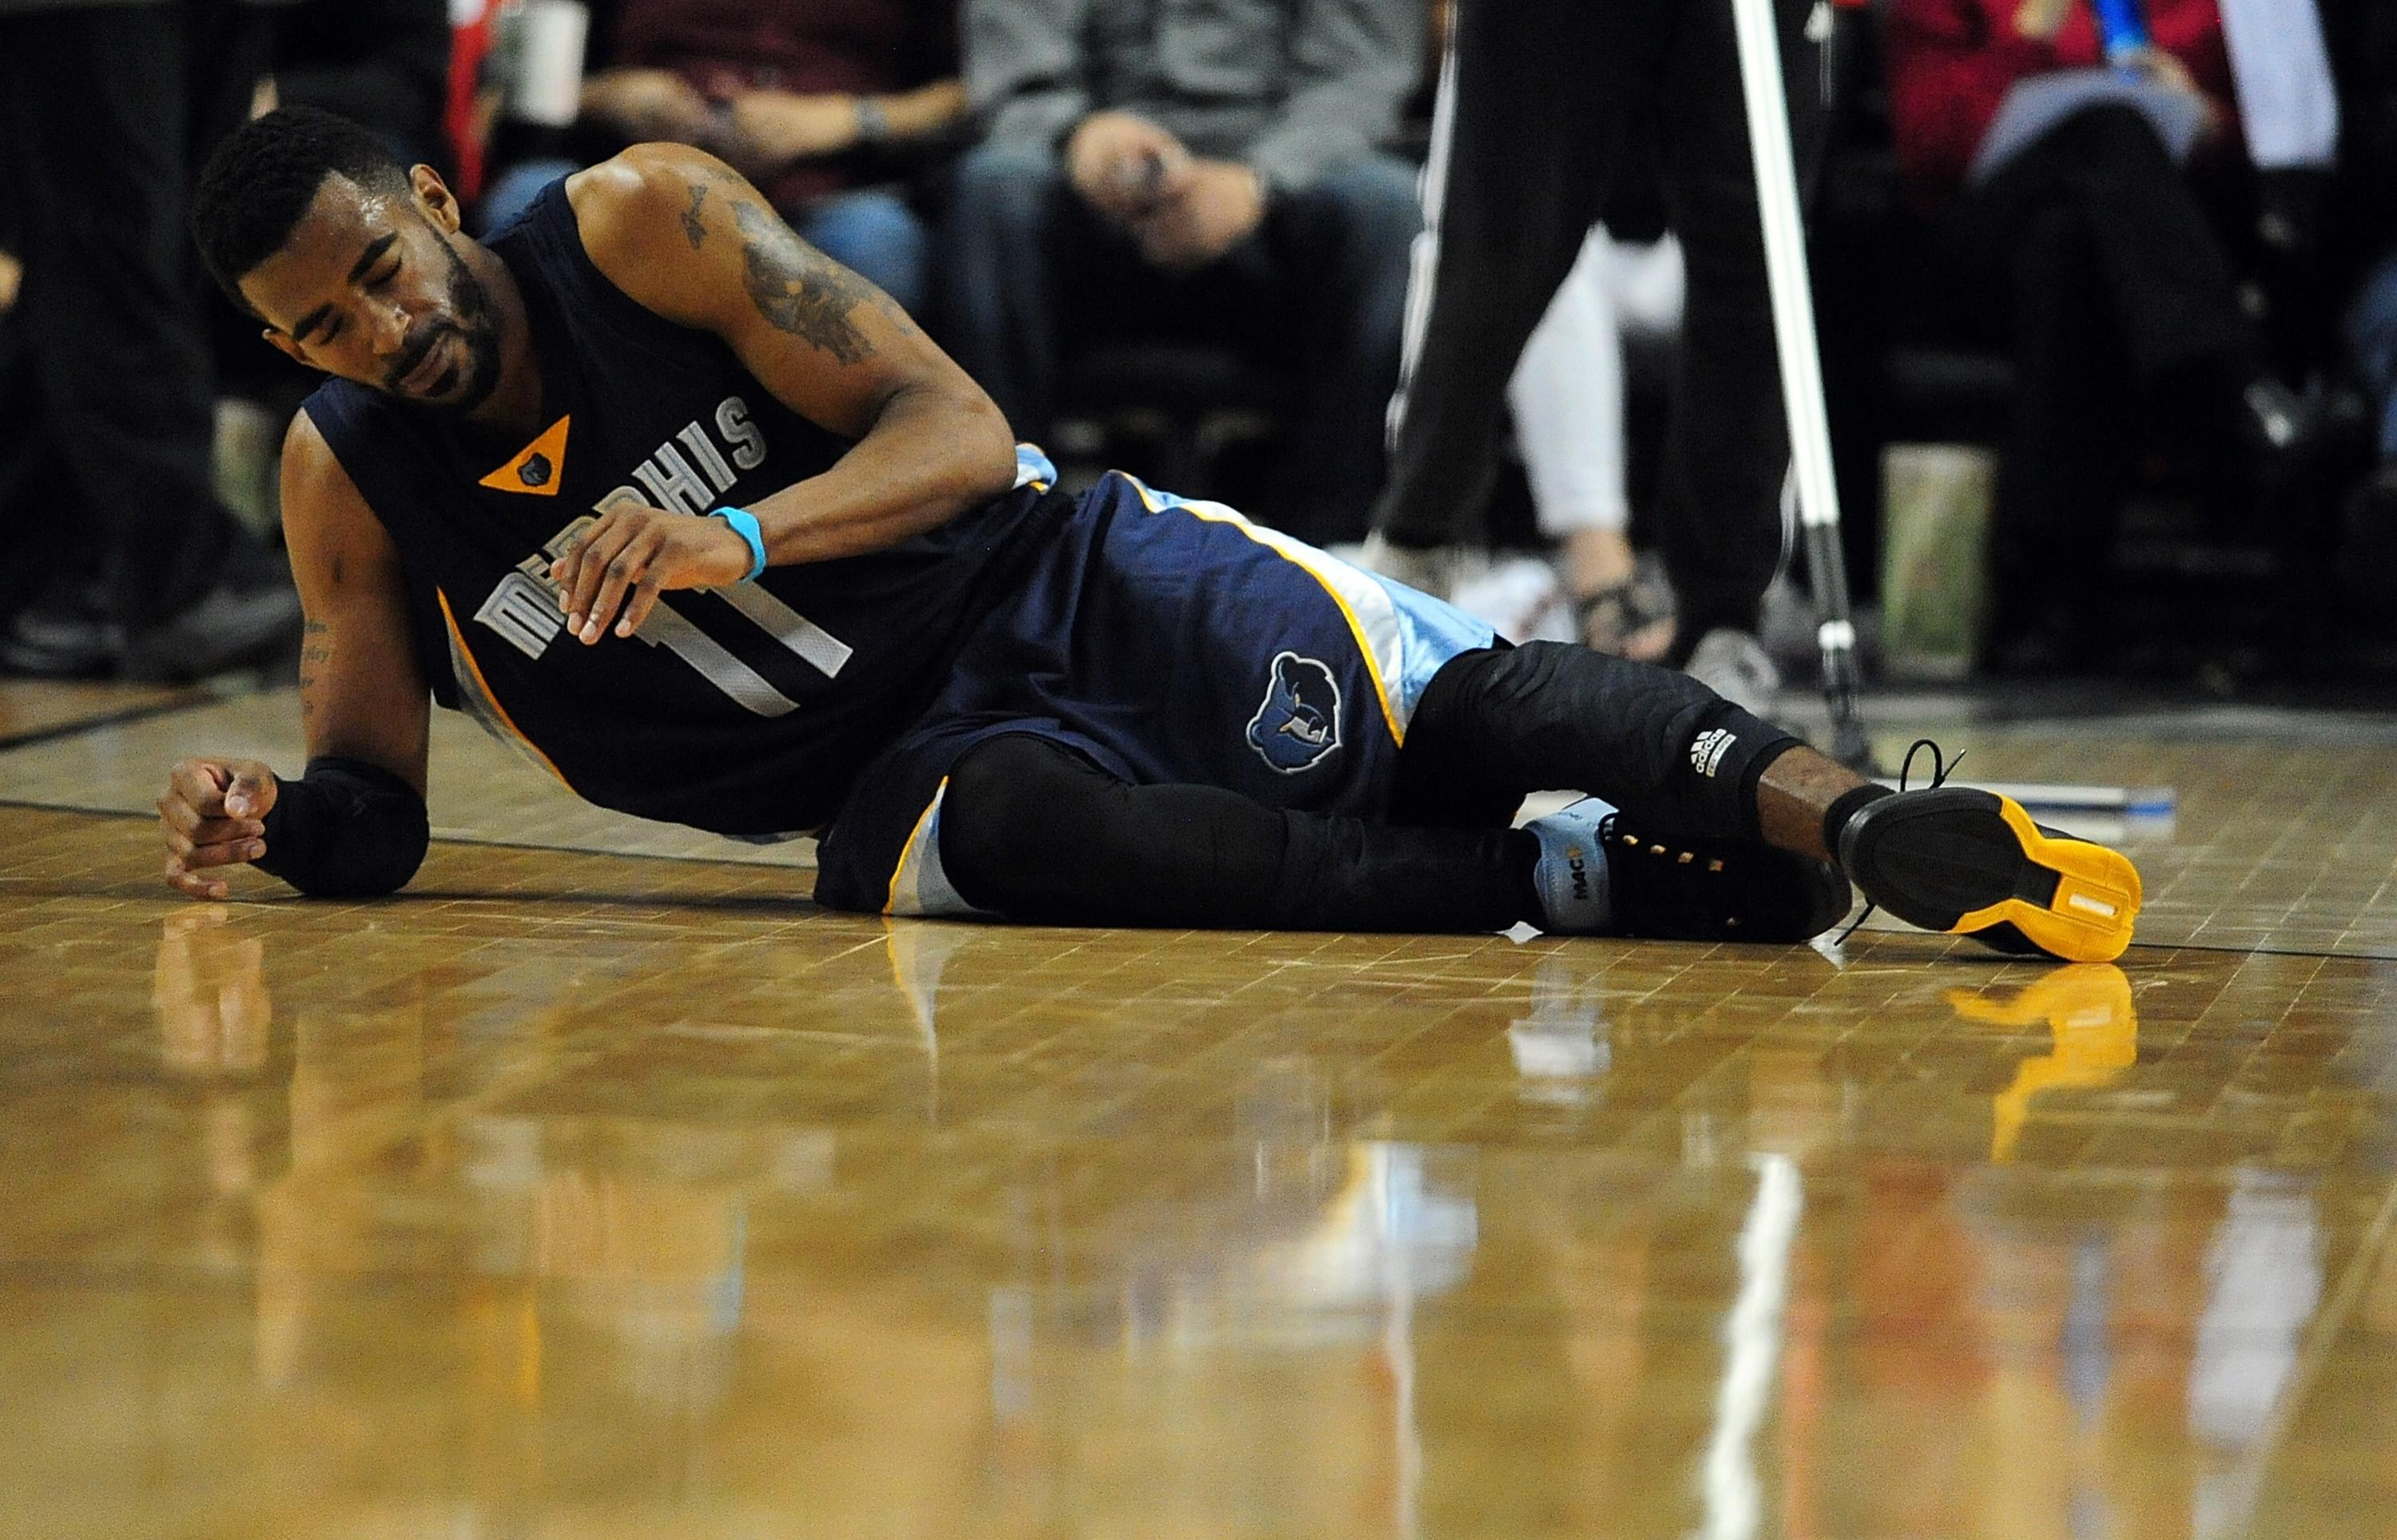 Mike Conley leaves with apparent face injury as Grizzlies take 3-0 lead